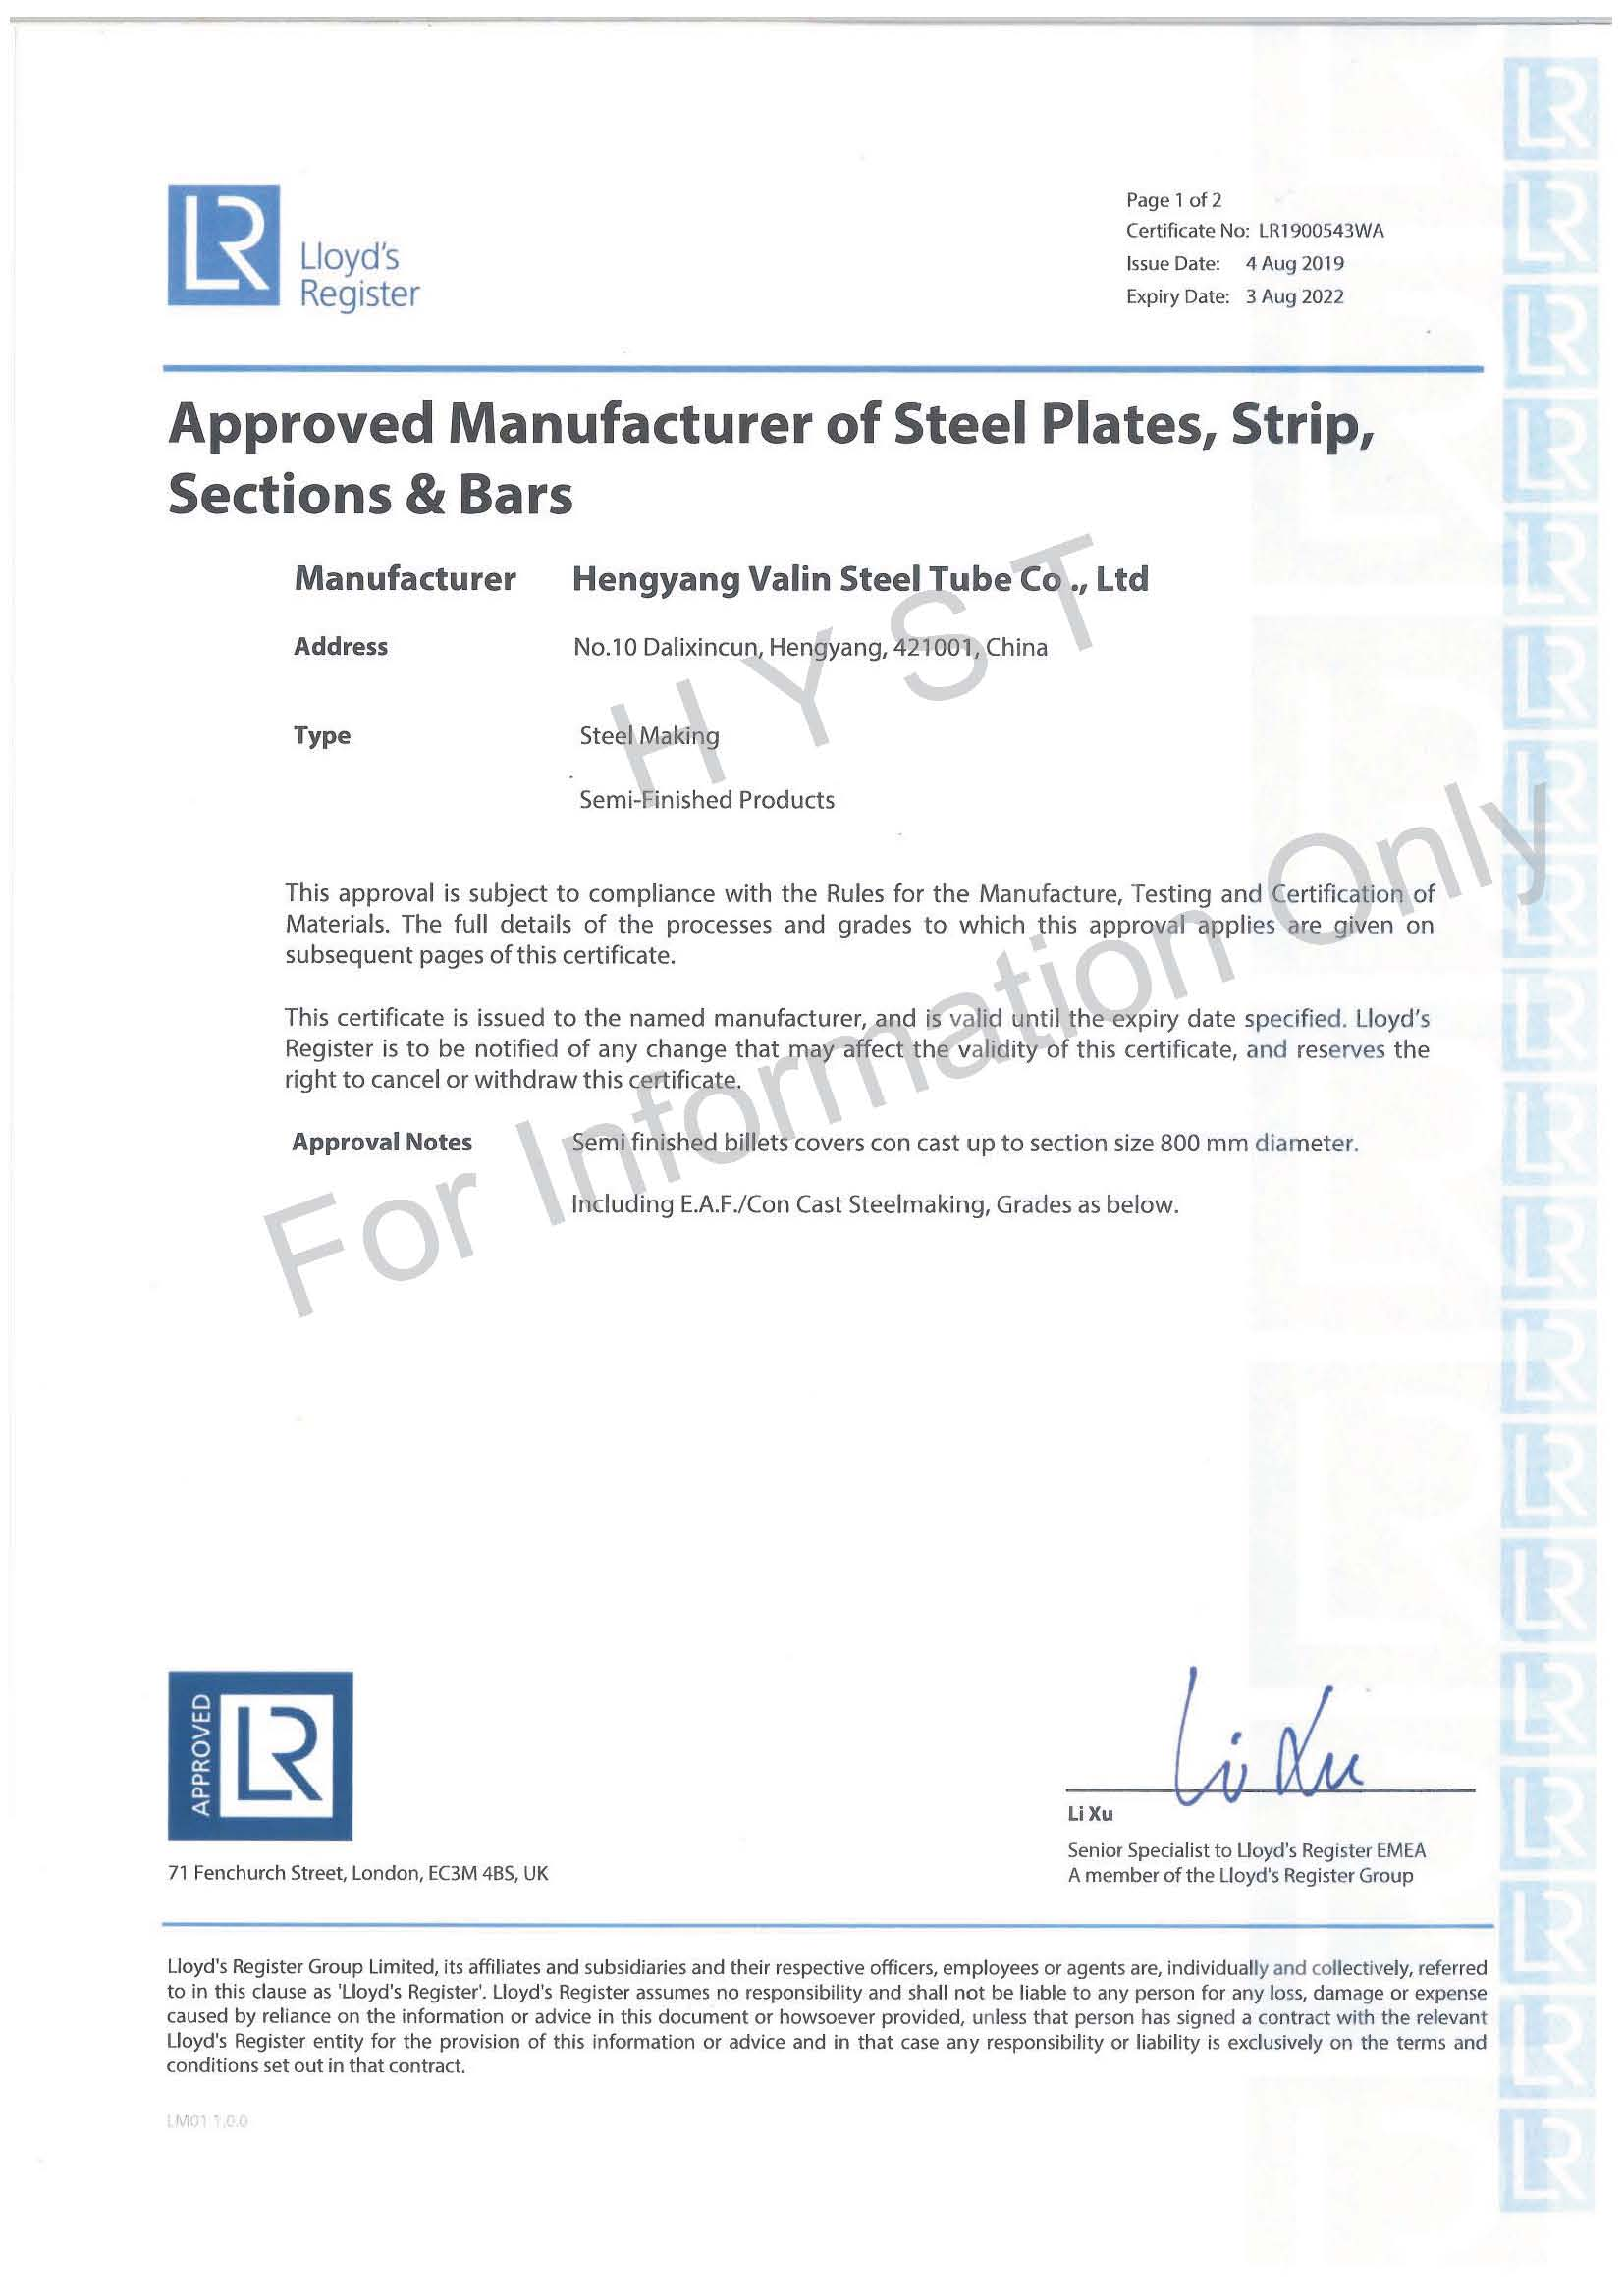 Lloyd Certificate for Billets of Carbon-Manganese & Alloy Steel Pipes